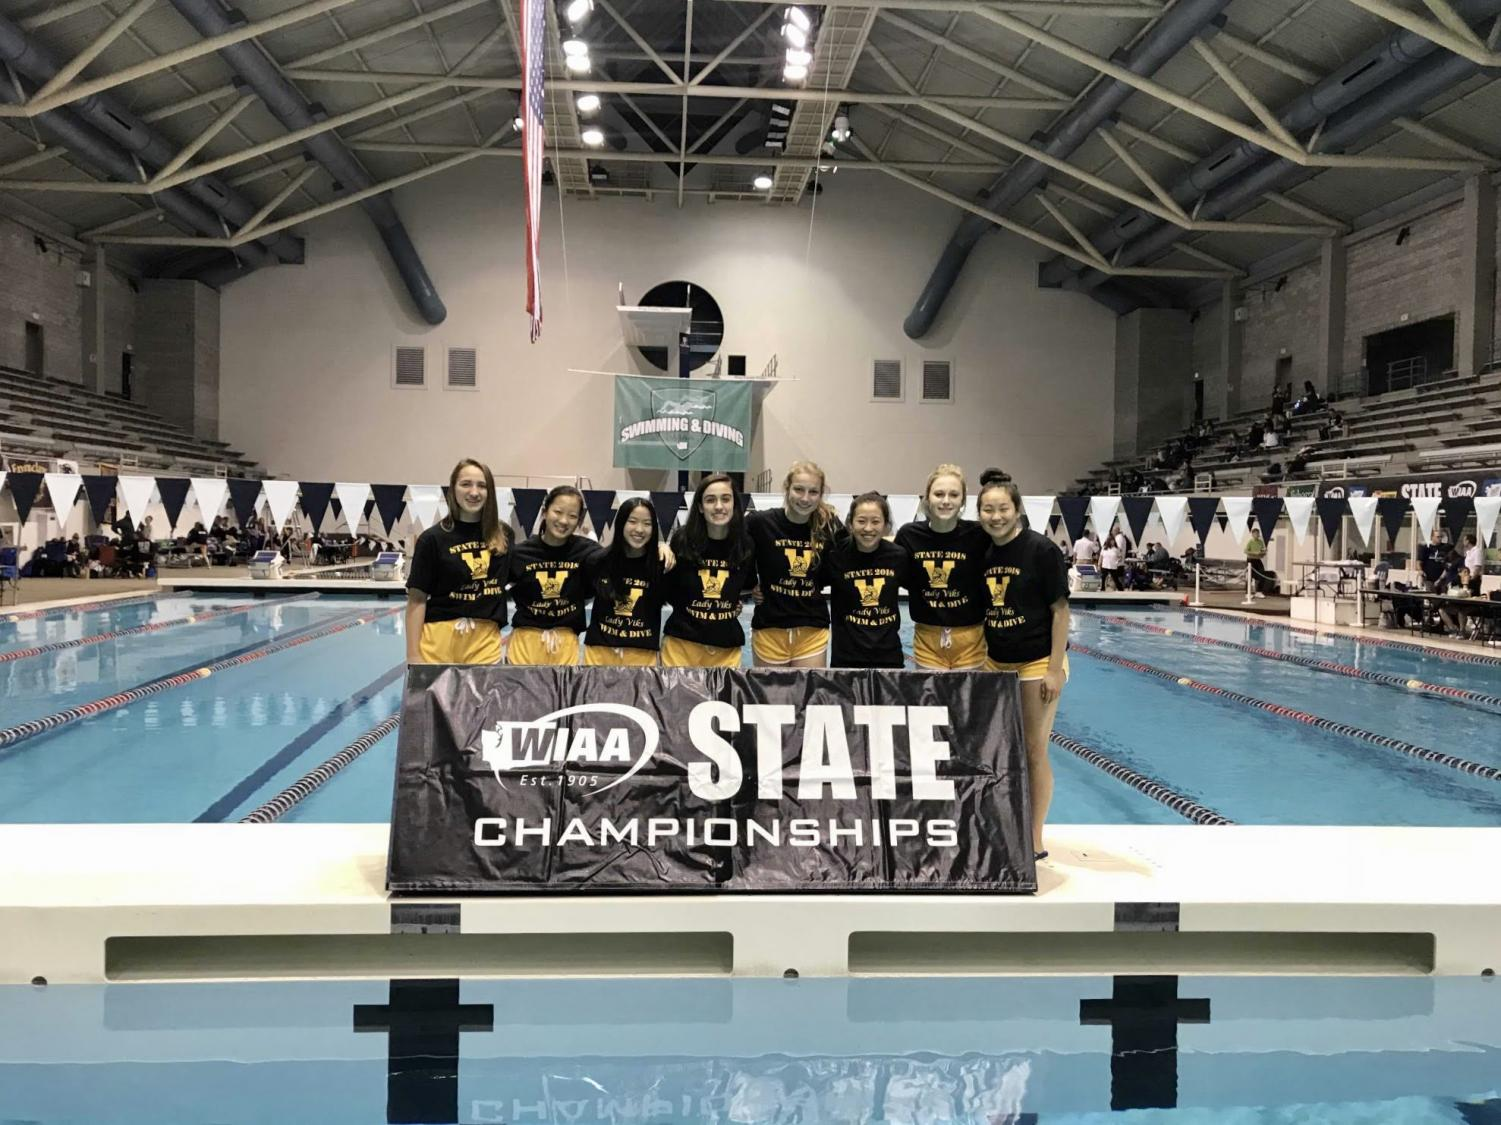 From left to right, freshman Madelyn Brown, freshman Grace Liu, freshman Jewel Hau, senior Julia Pakkala, freshman Naomi Voeller, freshman Megan Chow, sophomore Ella Marzec and junior Maddy Chow pose in front of the state championships banner prior to swimming at the preliminaries on Nov. 9.